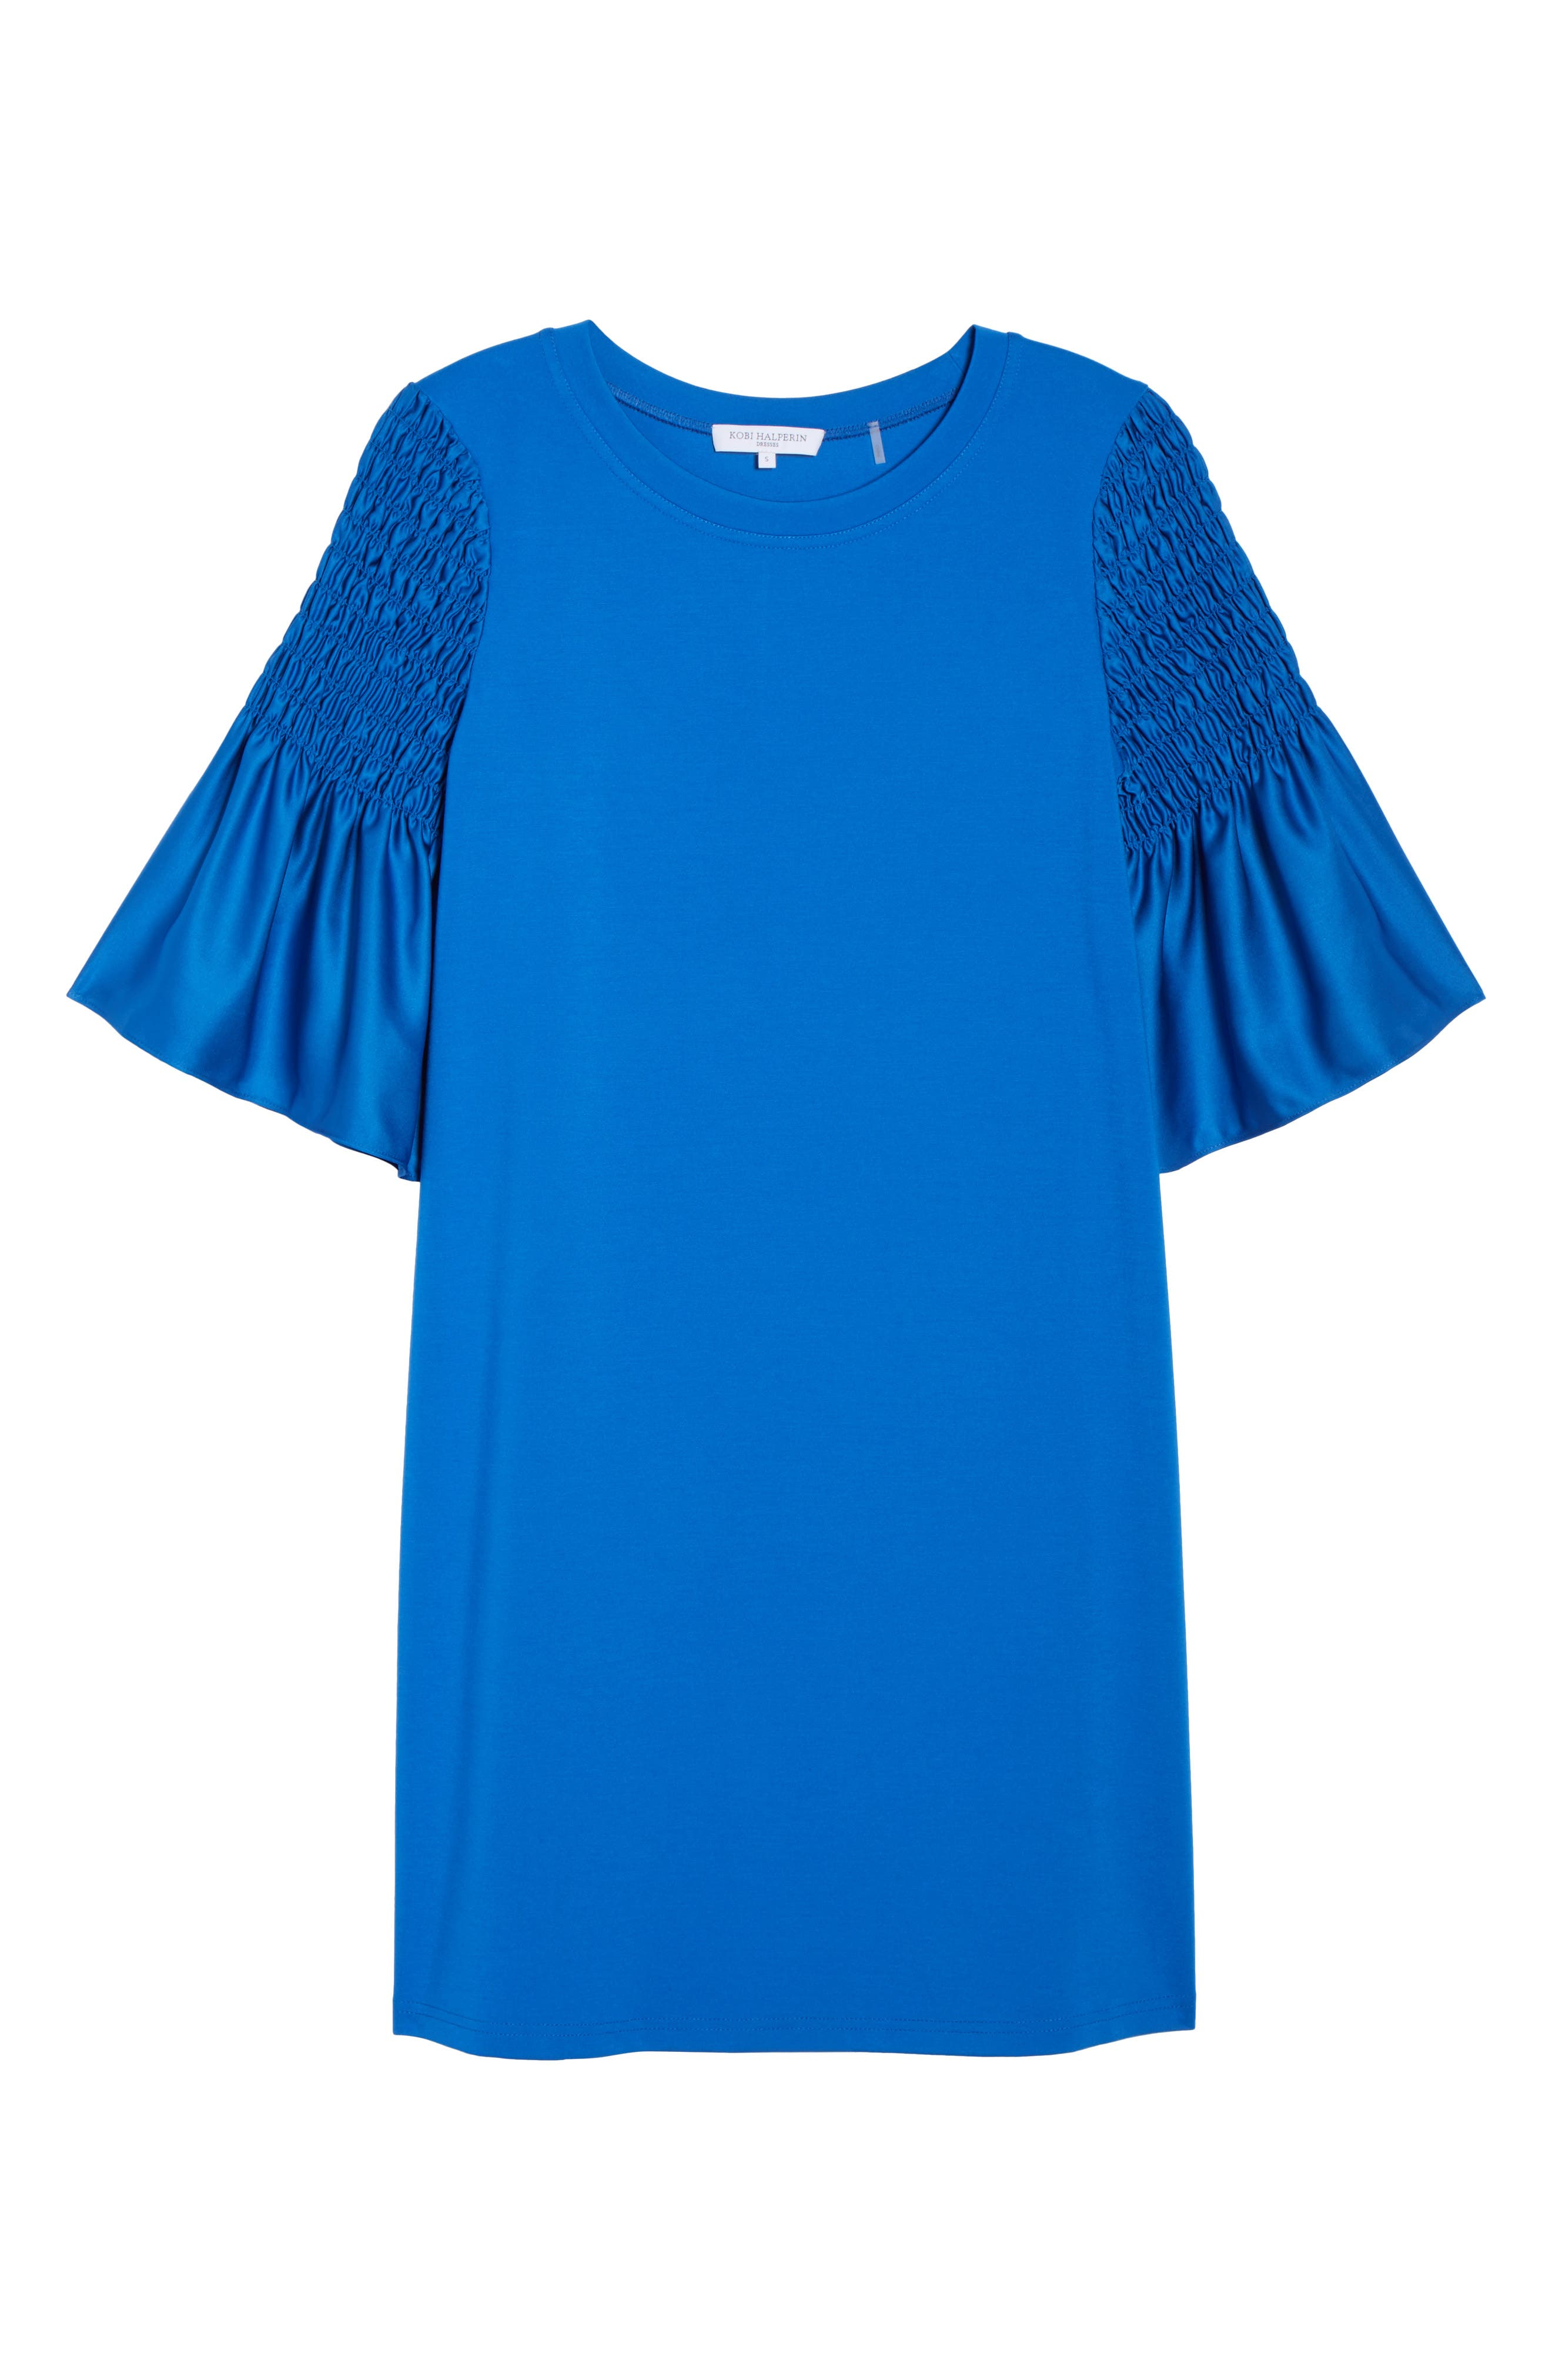 Suzette Shift Dress,                             Alternate thumbnail 6, color,                             Cobalt